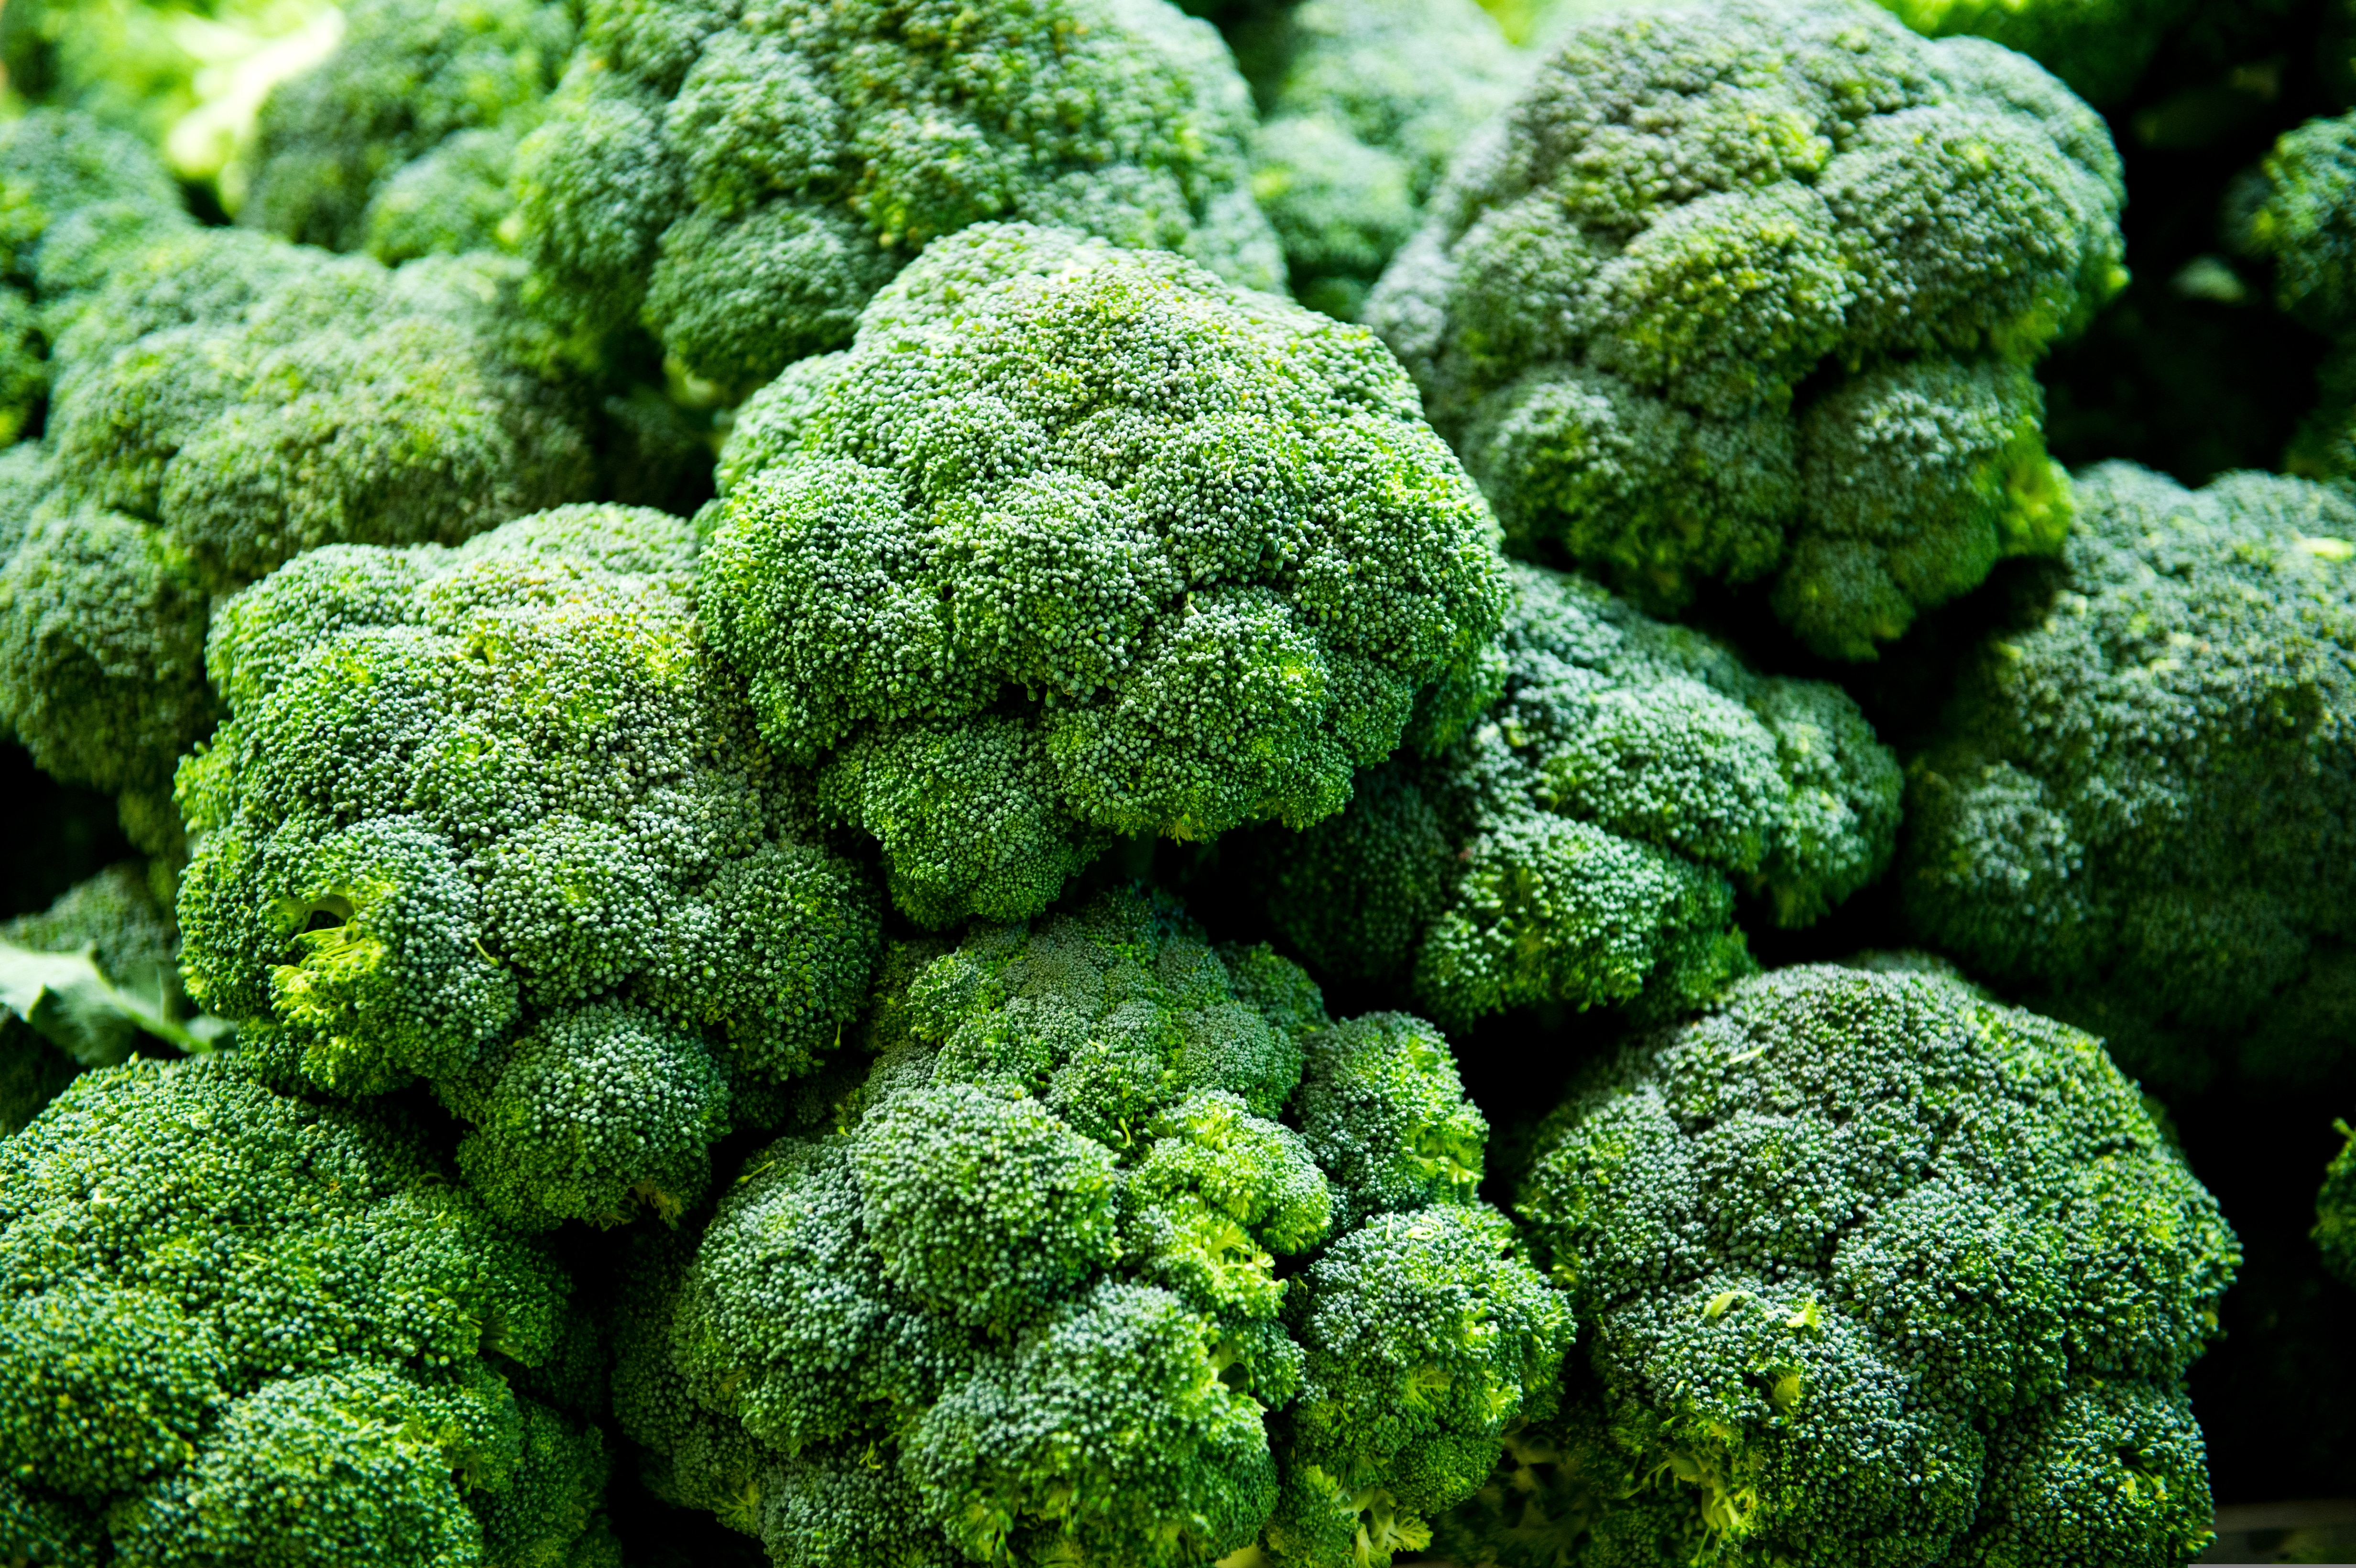 Group of fresh broccoli close up.